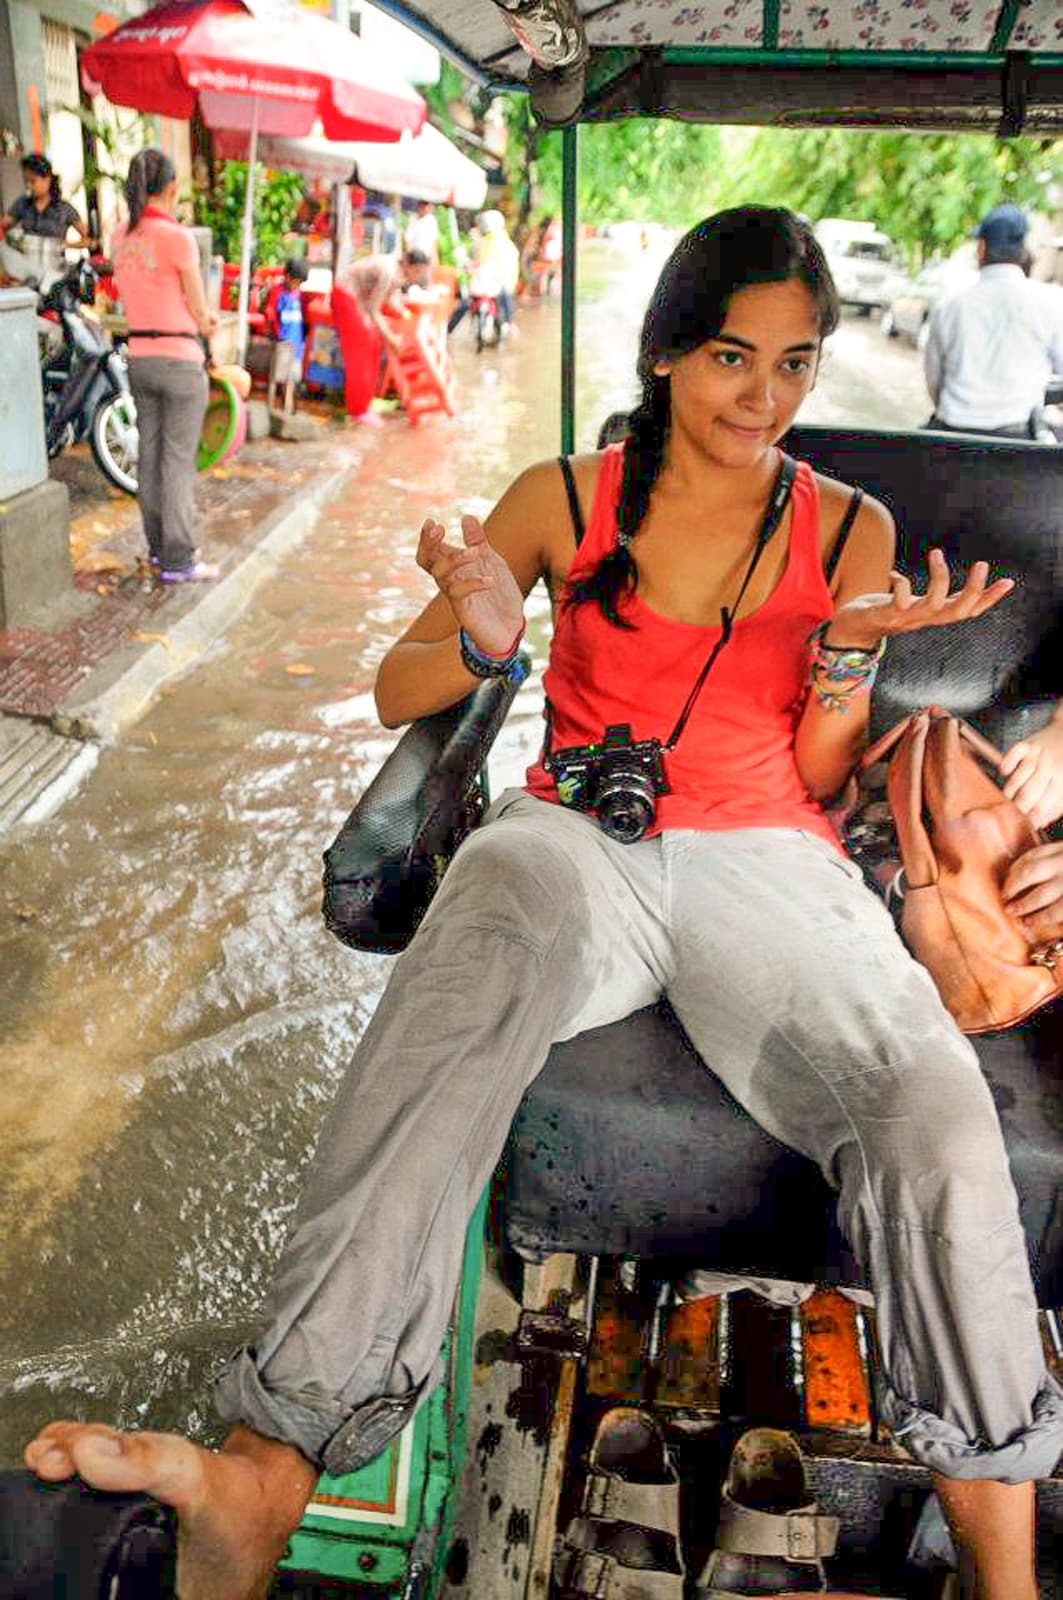 Female traveler riding in a tuktuk during a flood in Cambodia